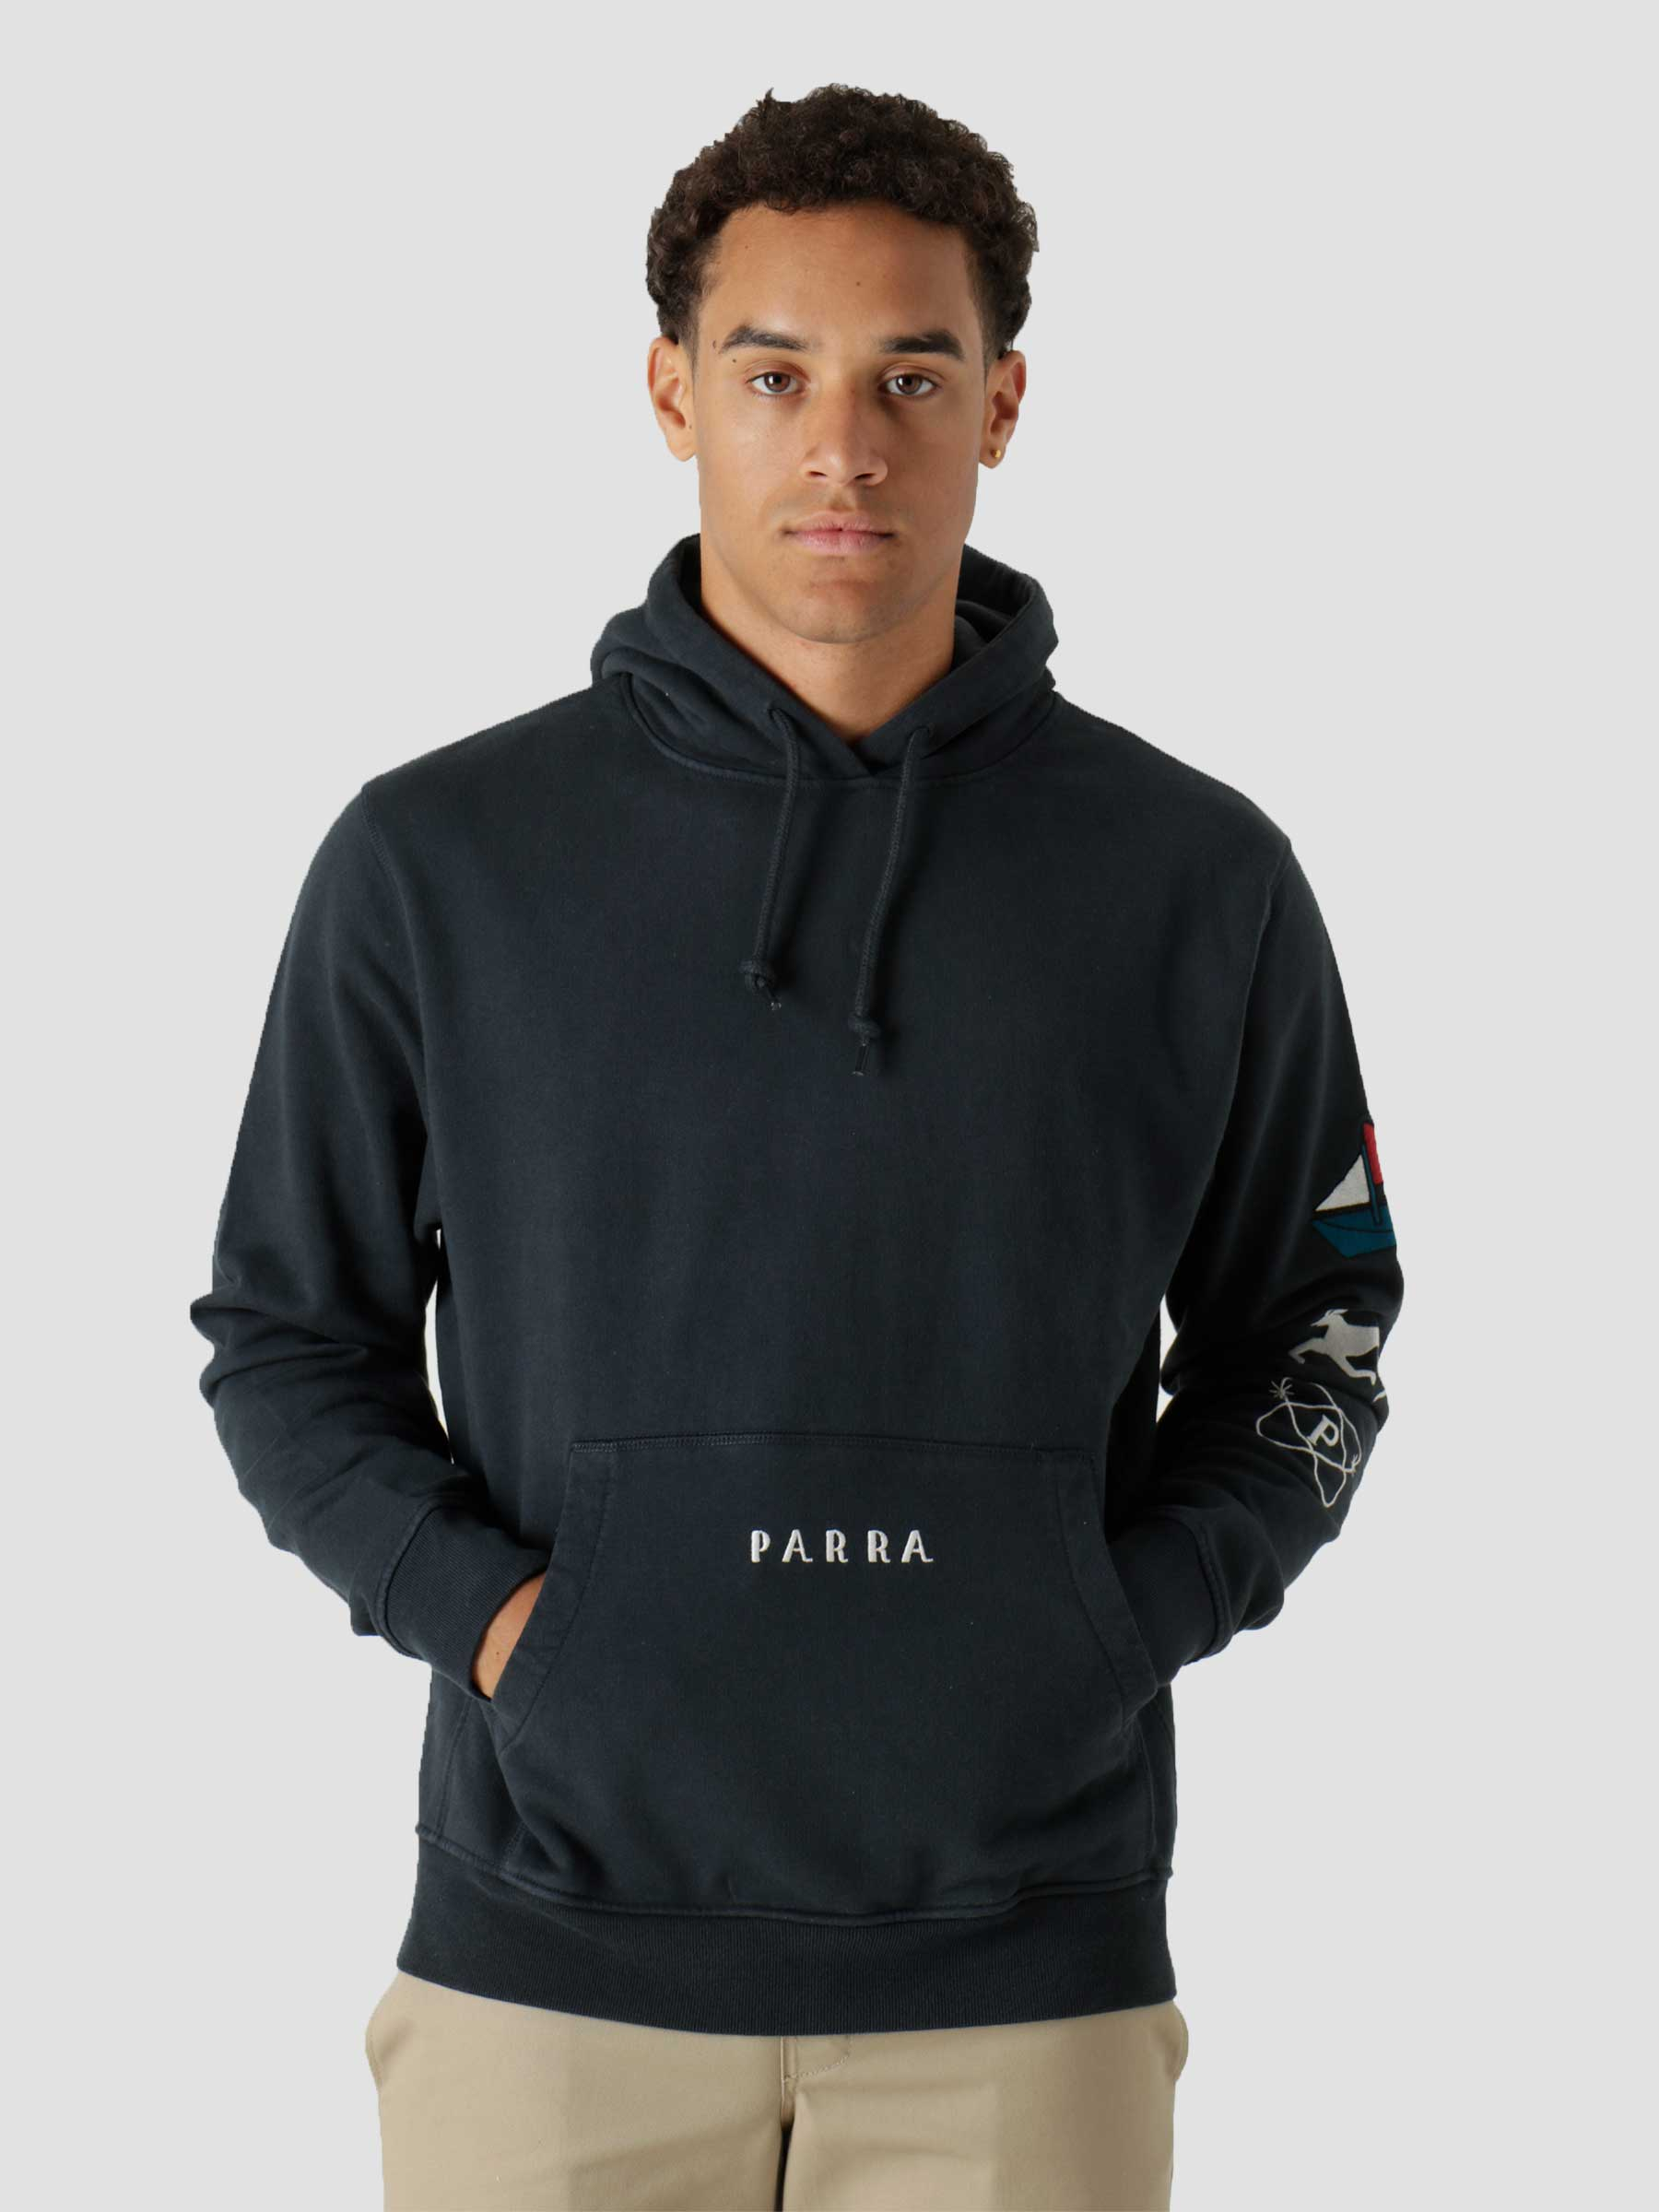 Paper Dog Systems Hooded Sweatshirt Navy Blue 46235